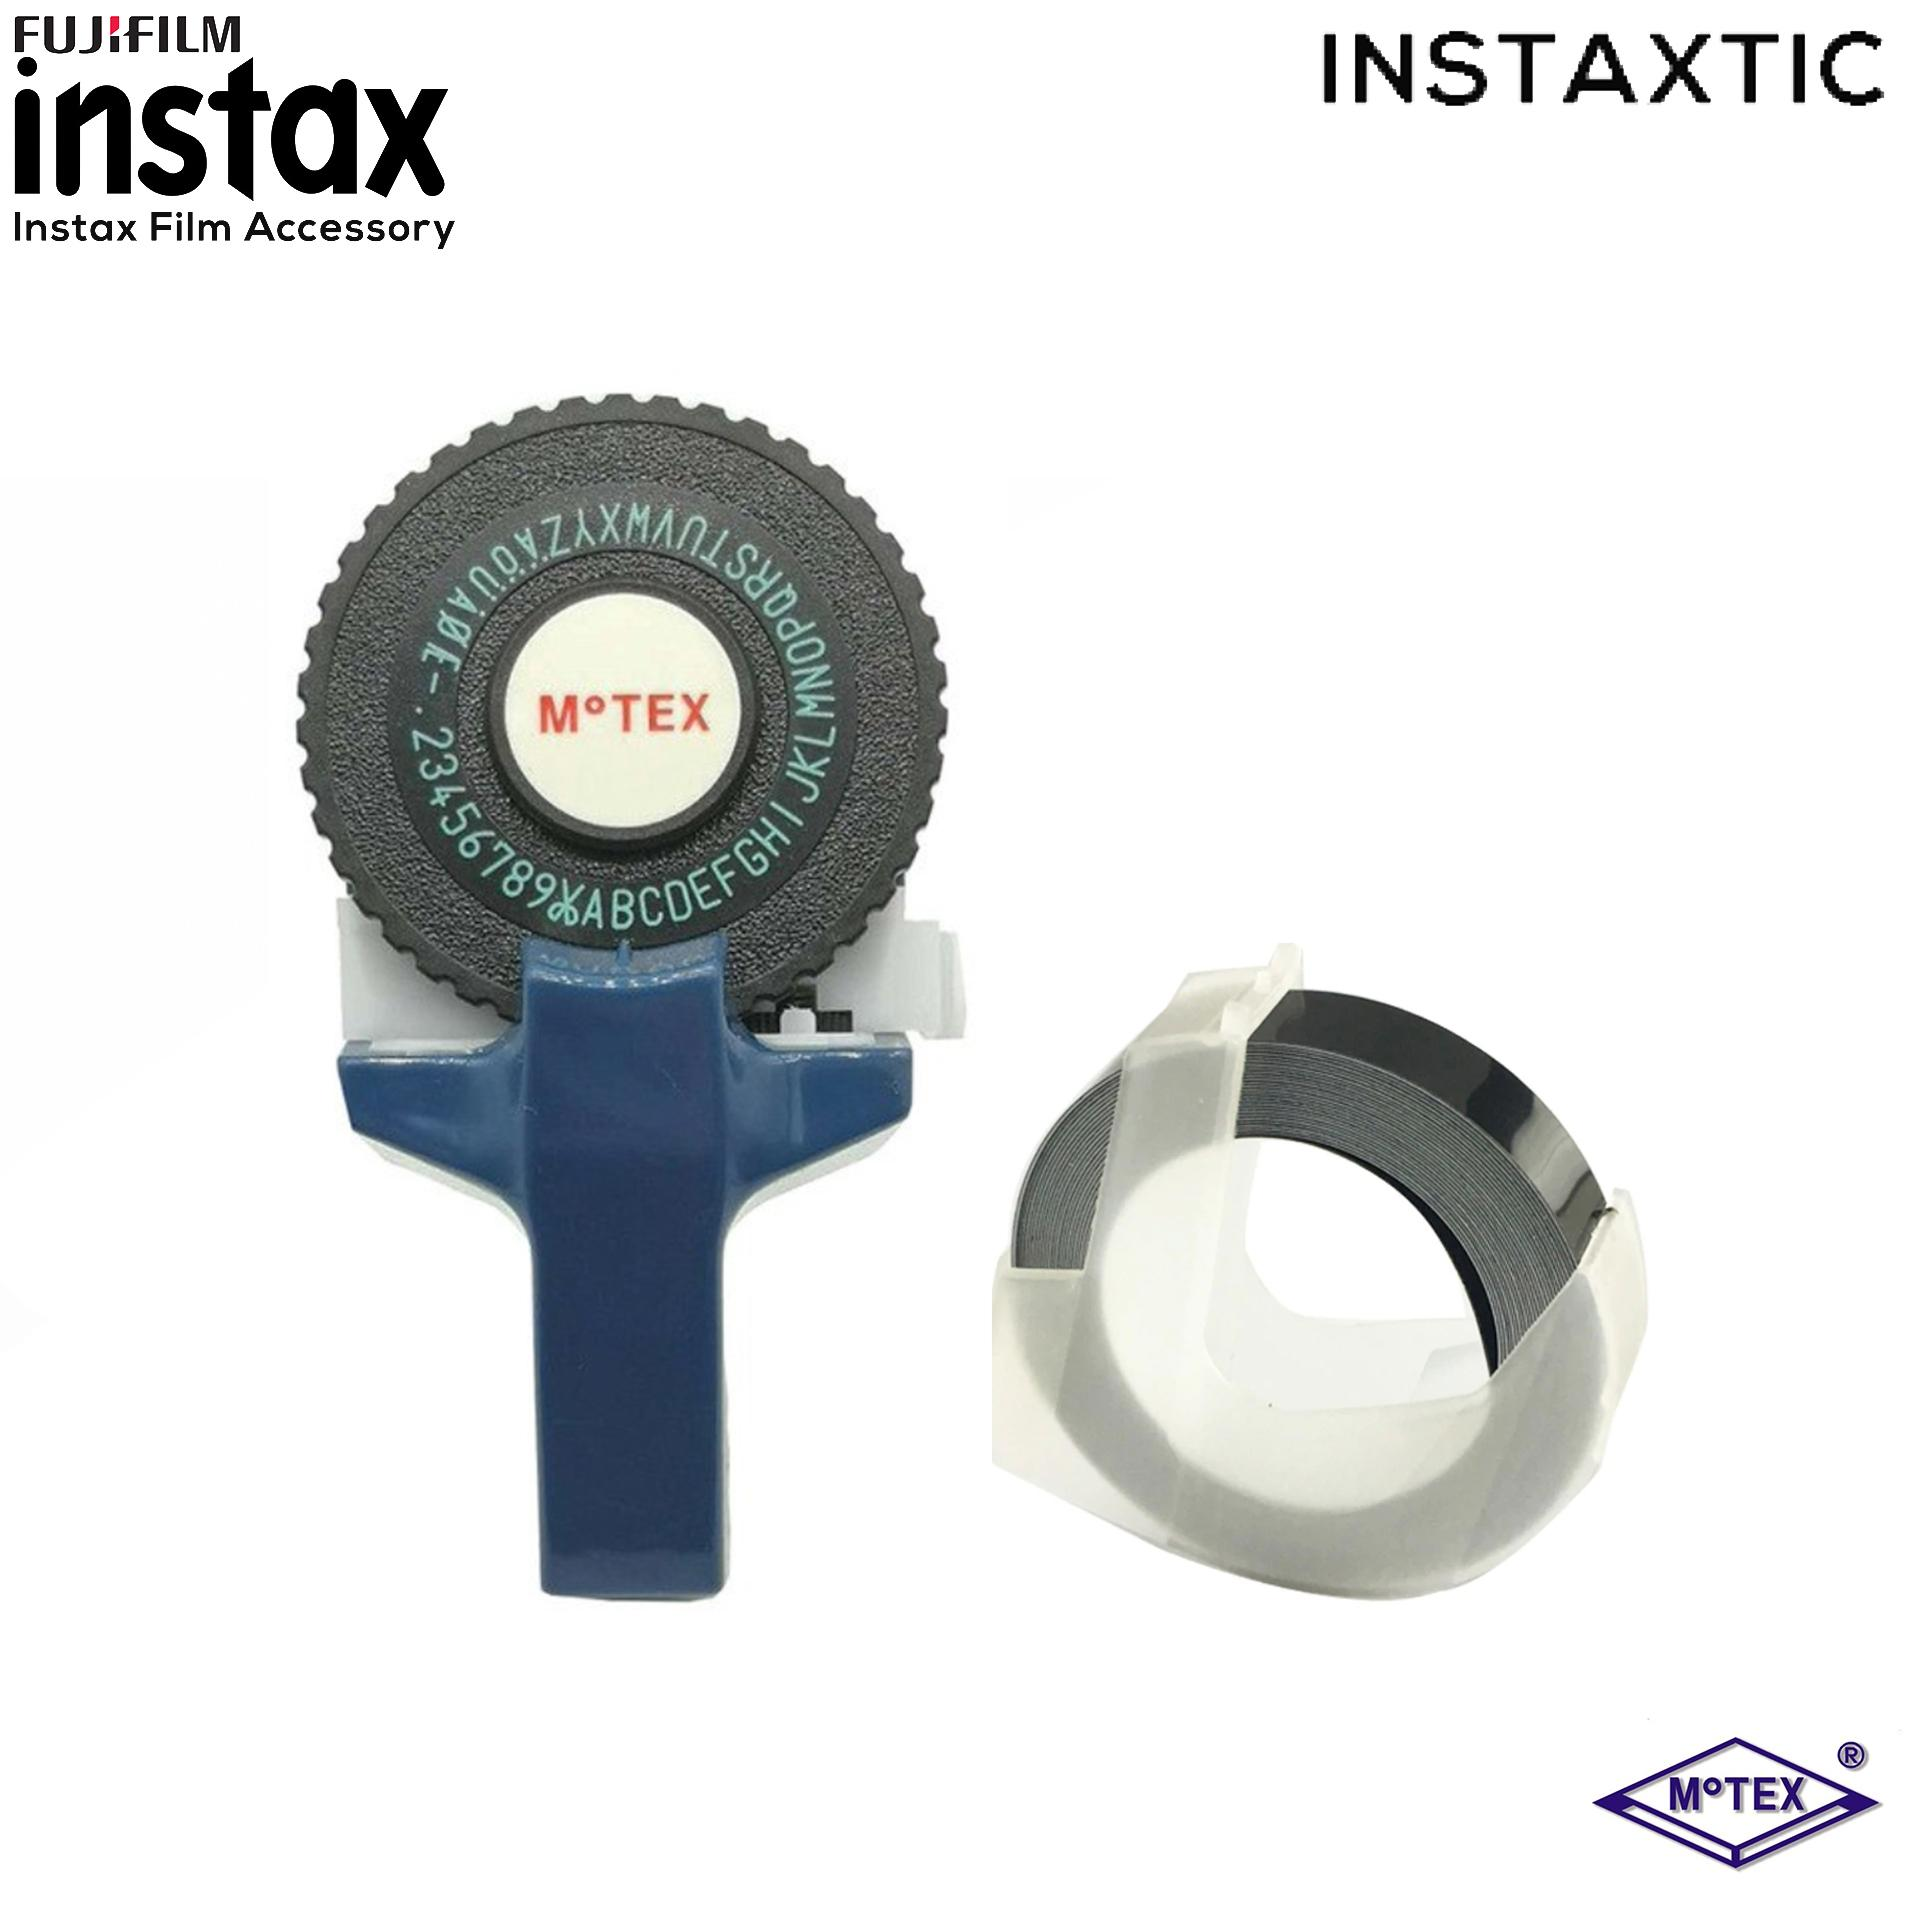 Motex Label Maker E-101 With Free 1 Pc Black Motex Tape By Instaxtic.